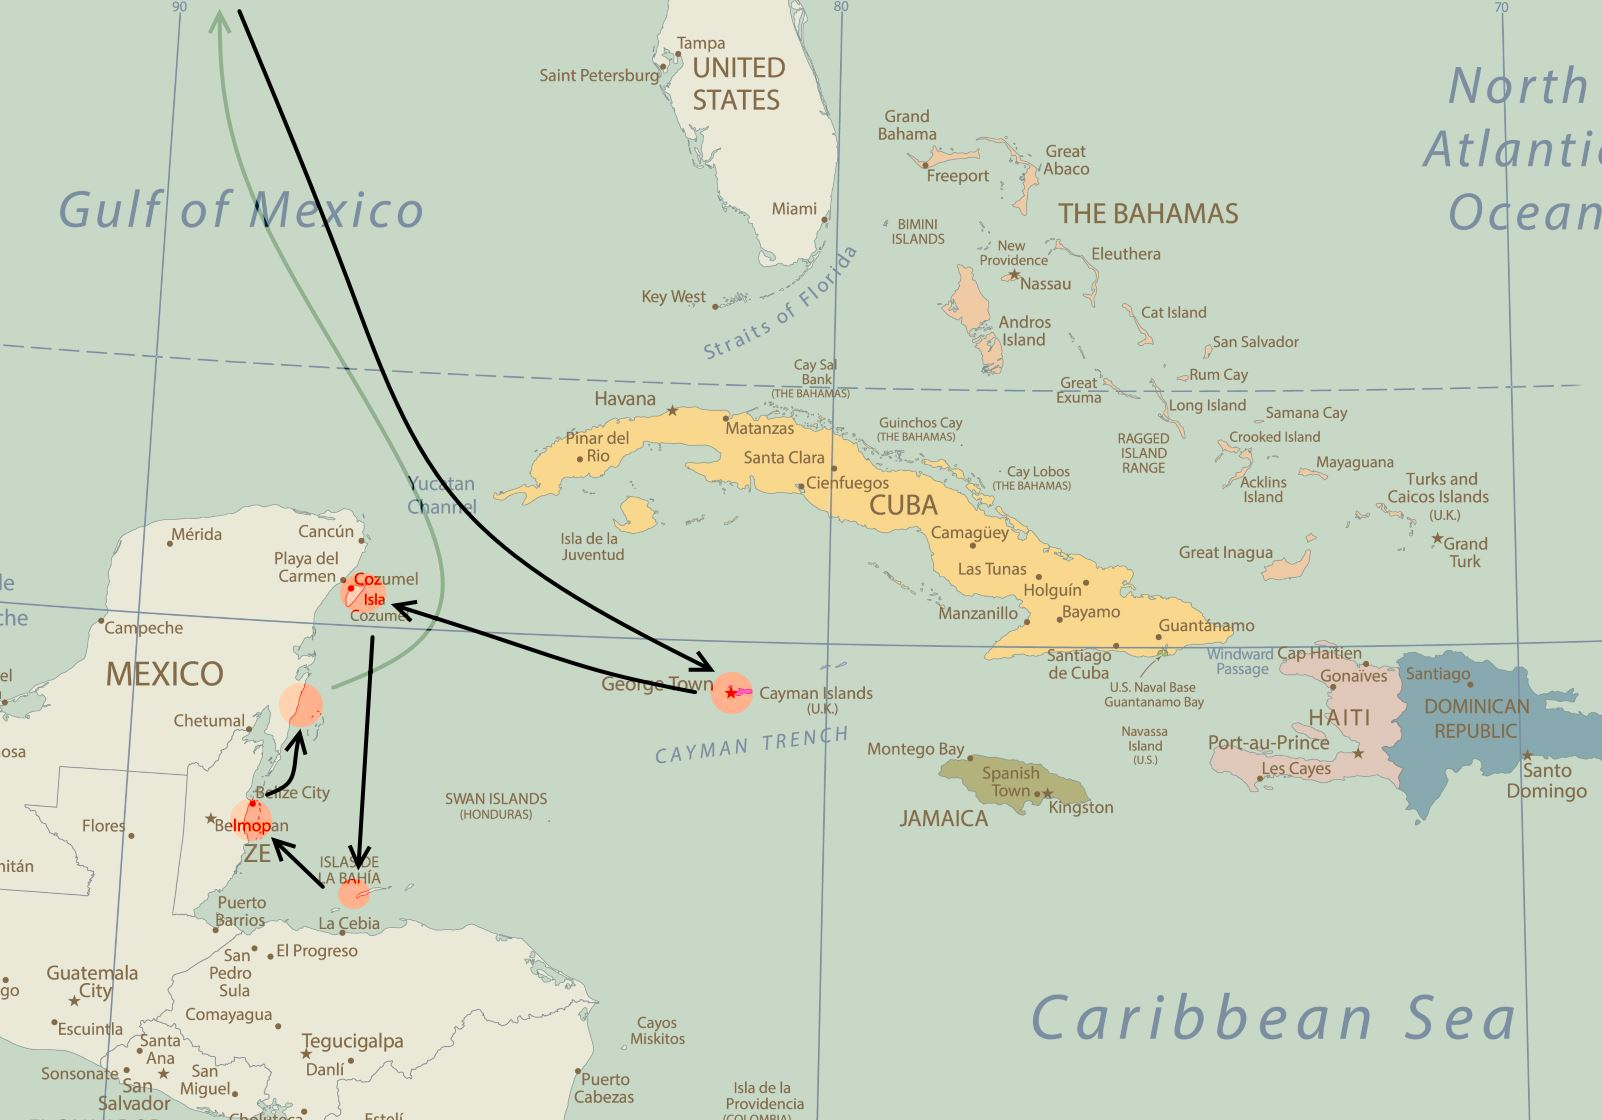 Western Caribbean Cruises On Norwegian Cruise Line From New Orleans